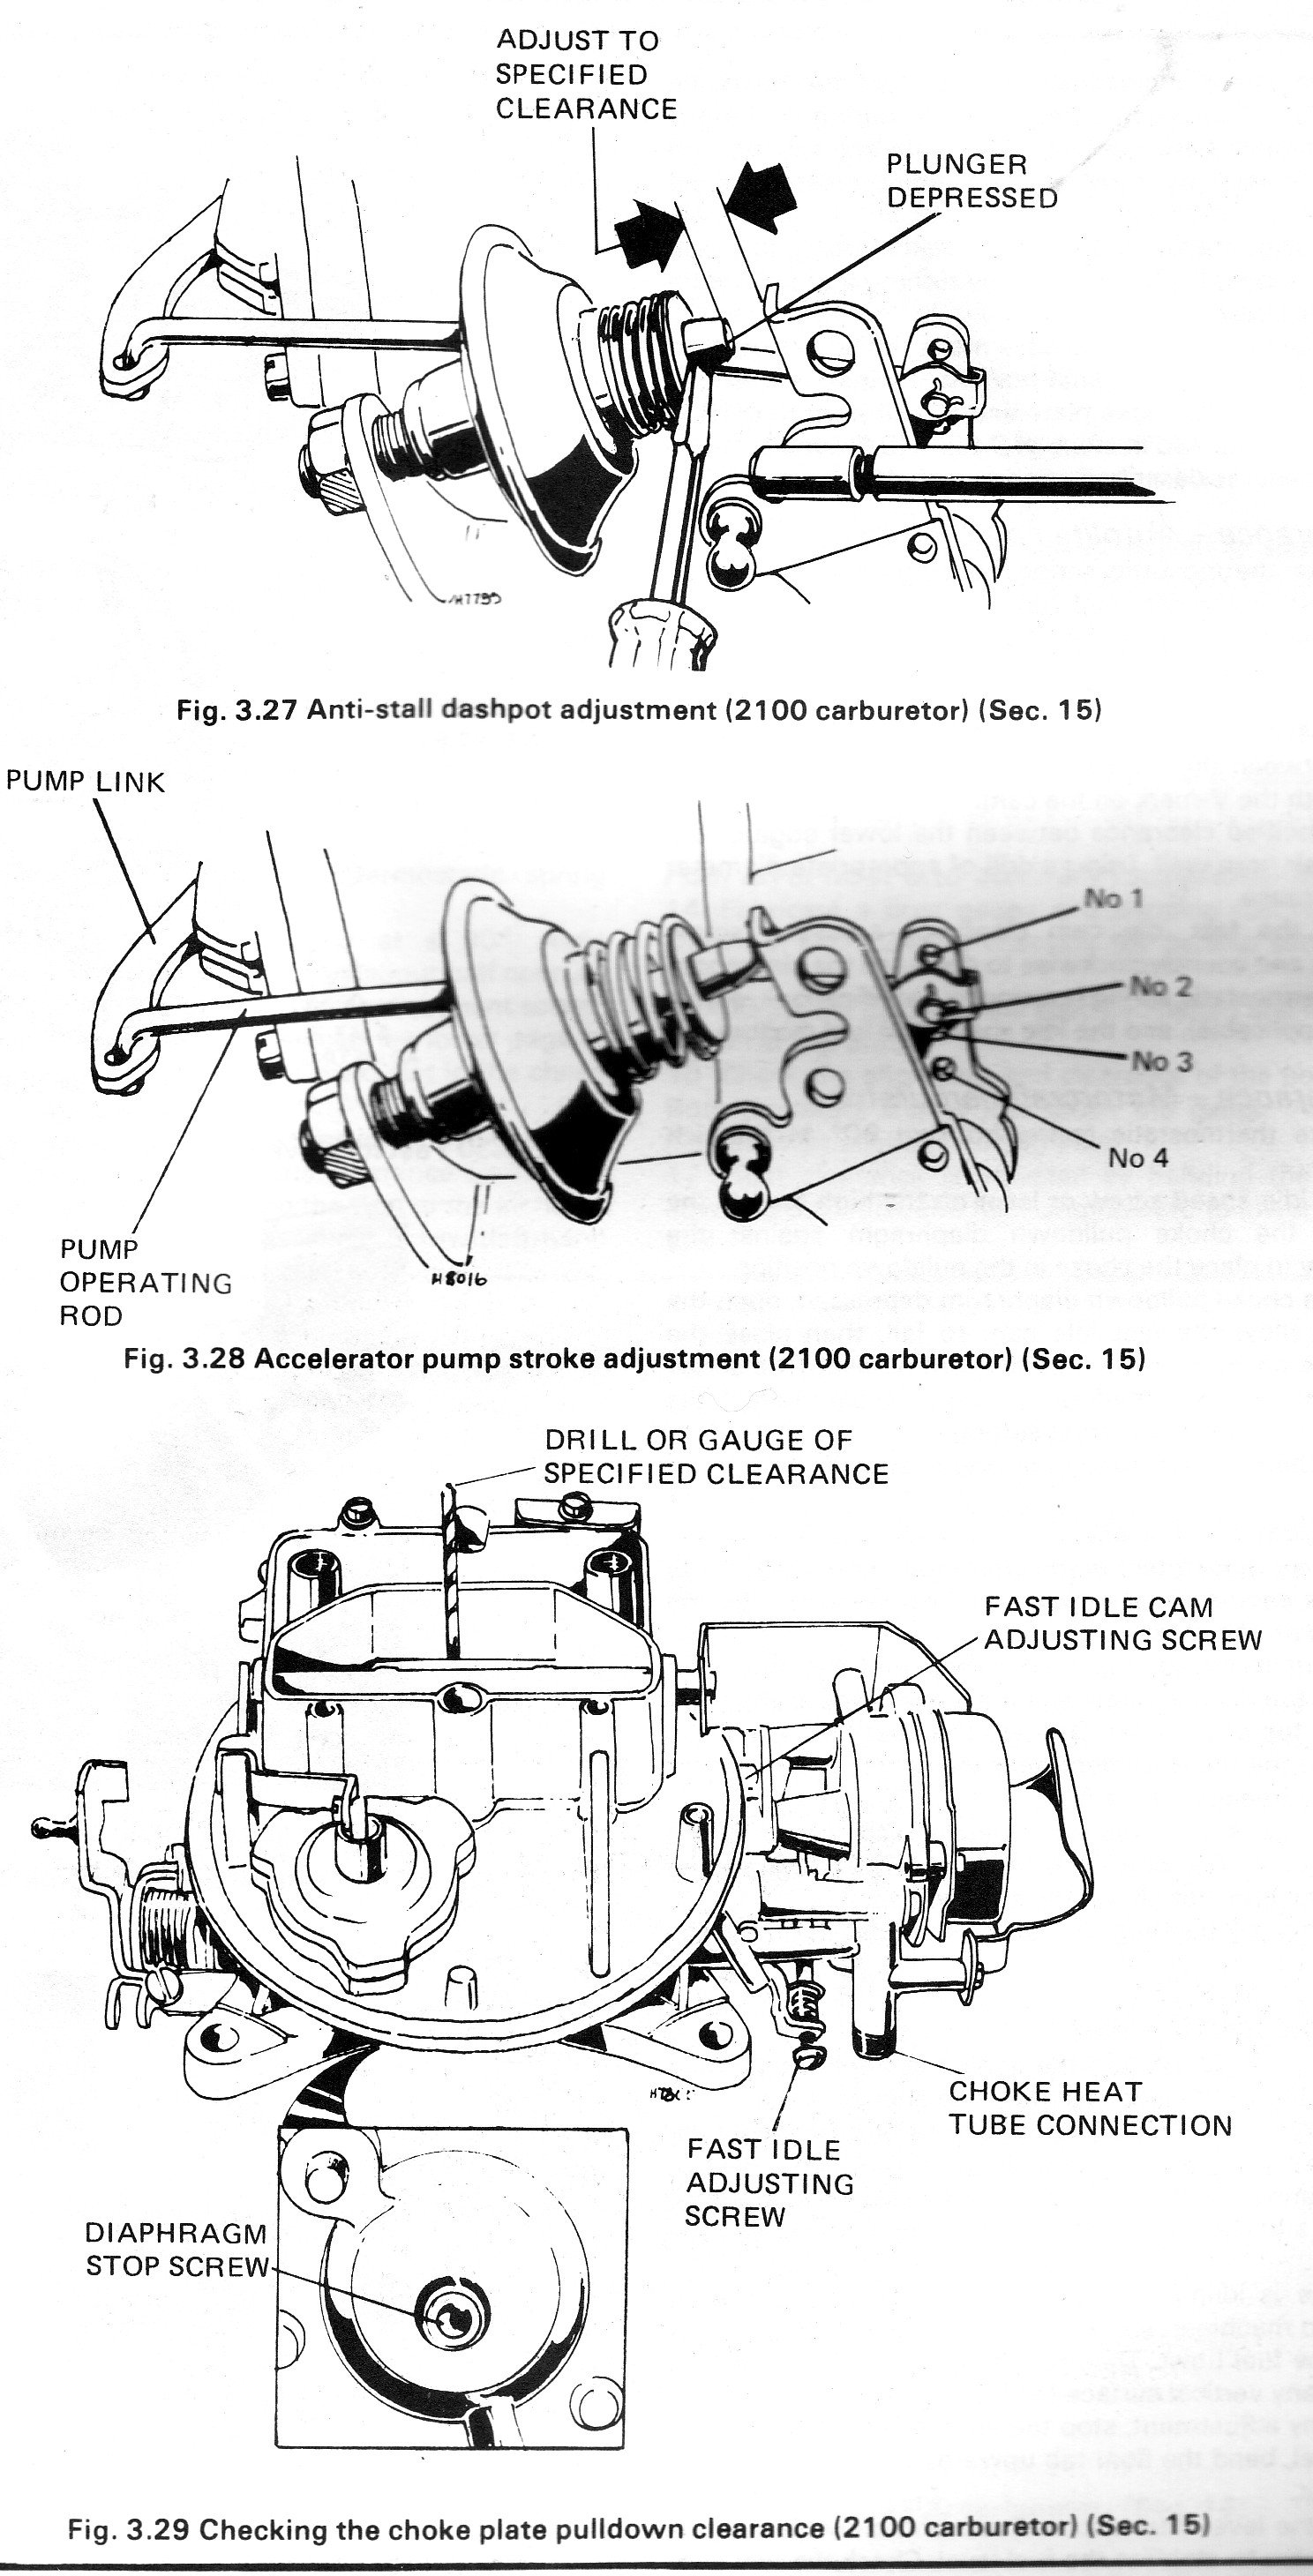 63151d1236398746 2100 carb diagram motorcraft 2100 2100 carb diagram page 2 ford mustang forum Motorcraft 2150 Carburetor Identification at bayanpartner.co